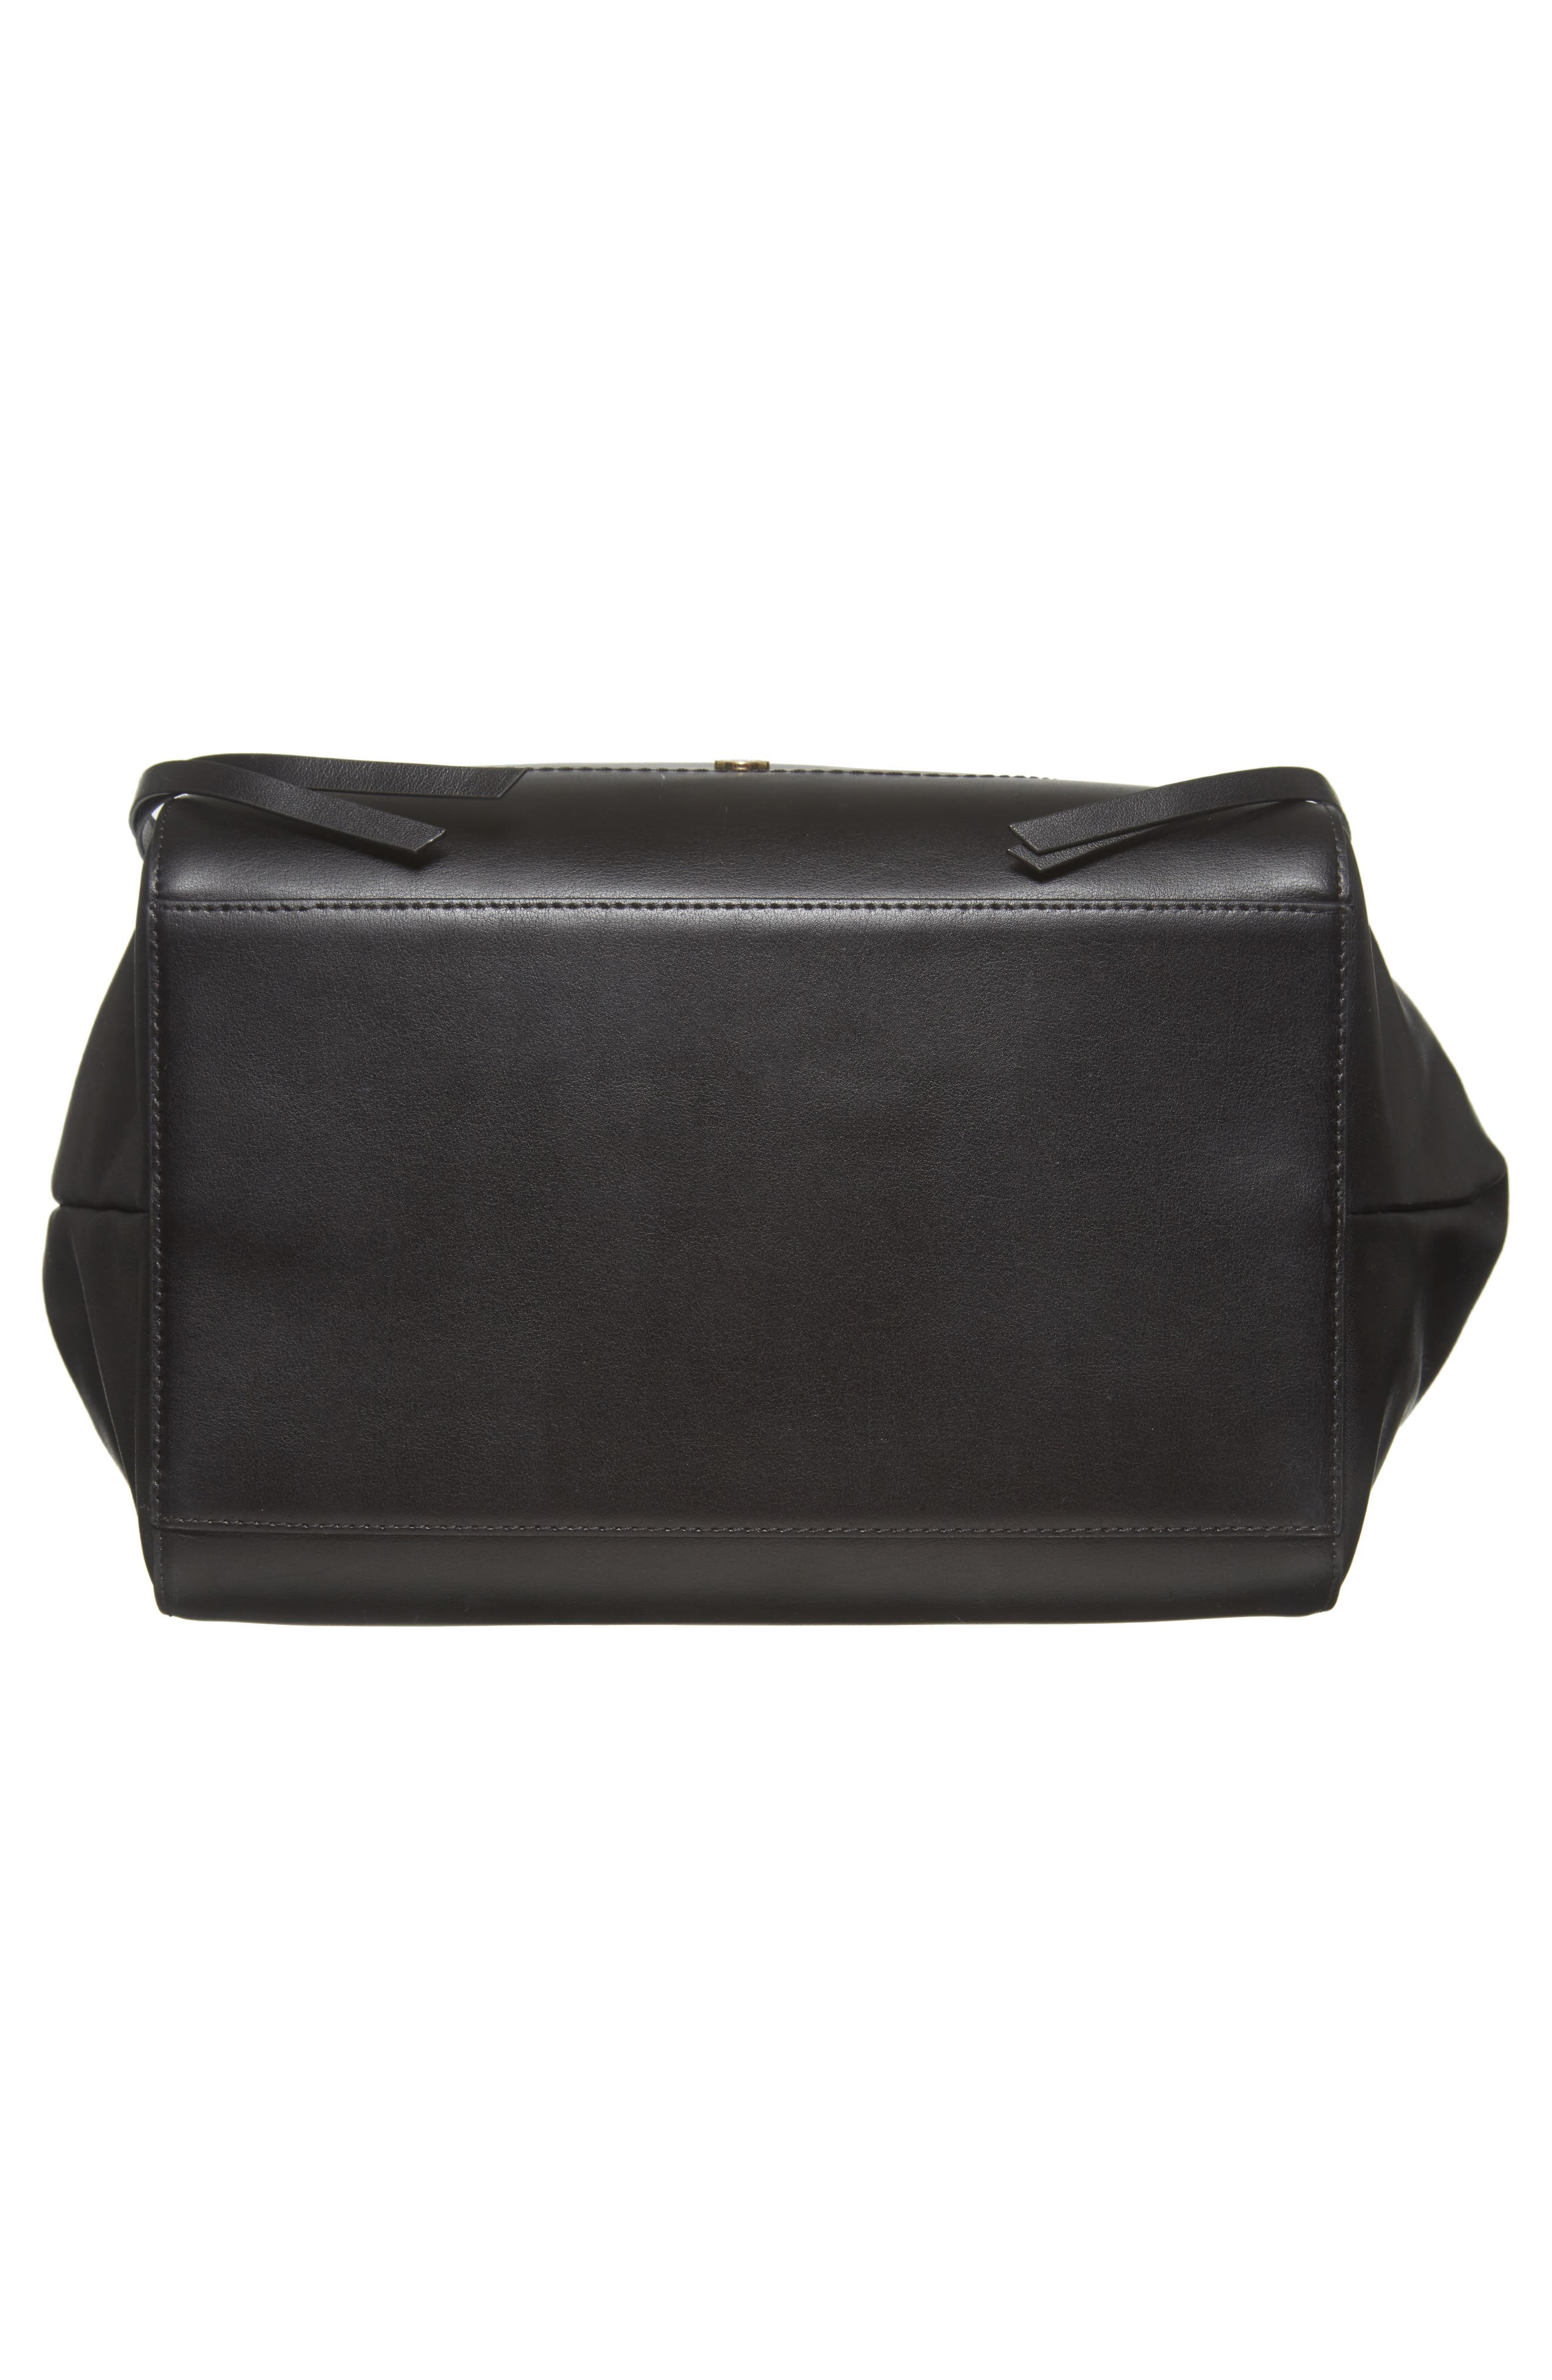 Downtown Charlize RFID Leather Tote,                             Alternate thumbnail 6, color,                             Black